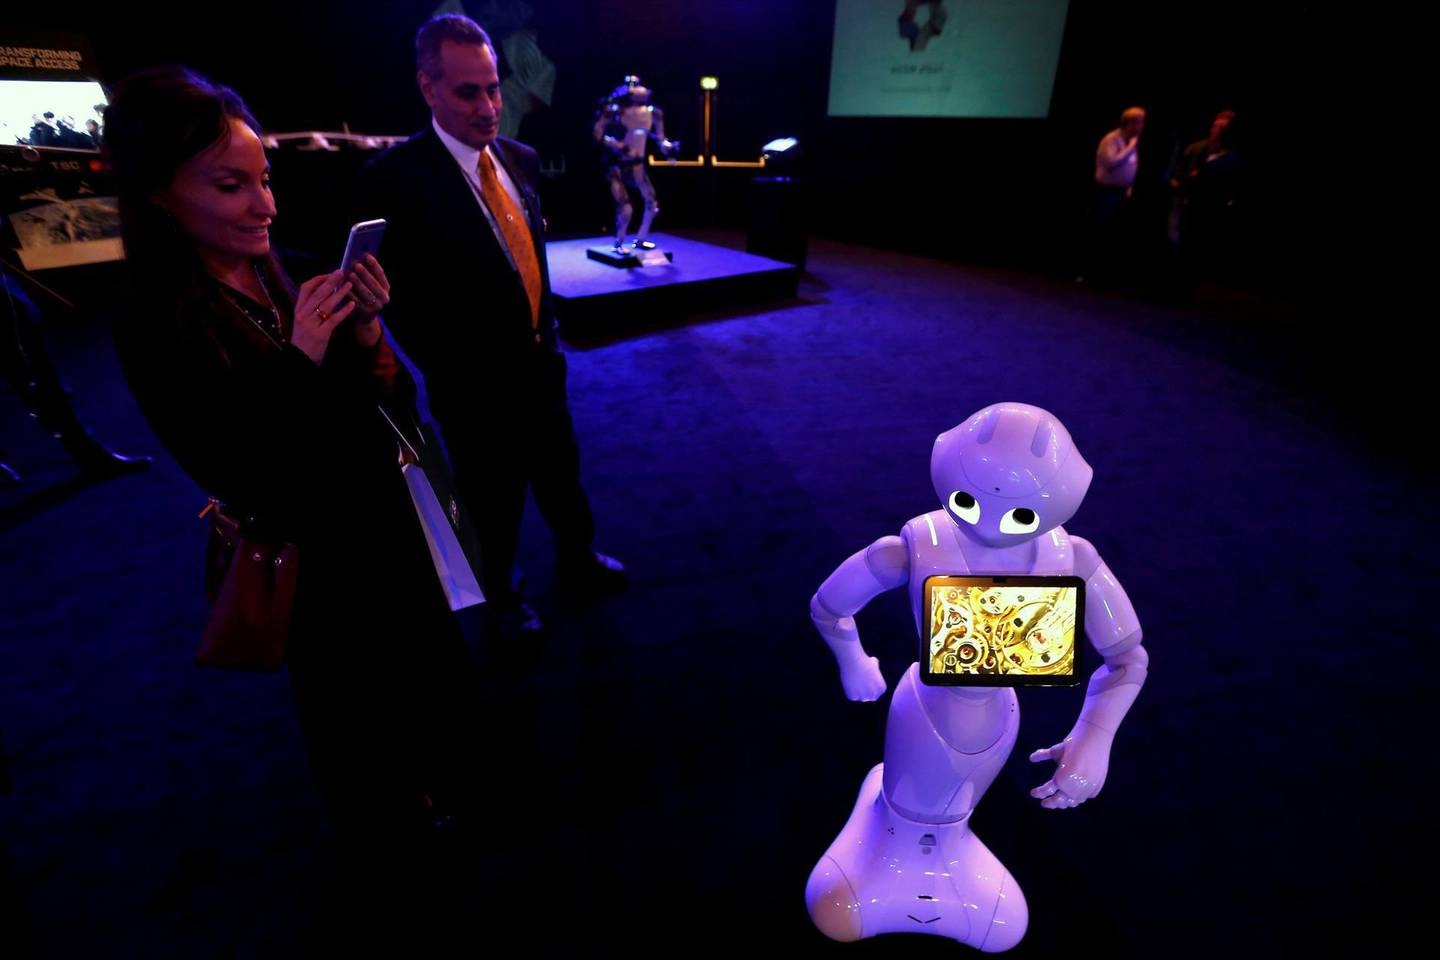 FILE PHOTO: A visitor takes pictures of a robot during an exhibition on 'Neom', a new business and industrial city, in Riyadh, Saudi Arabia, October 25, 2017. REUTERS/Faisal Al Nasser/File Photo